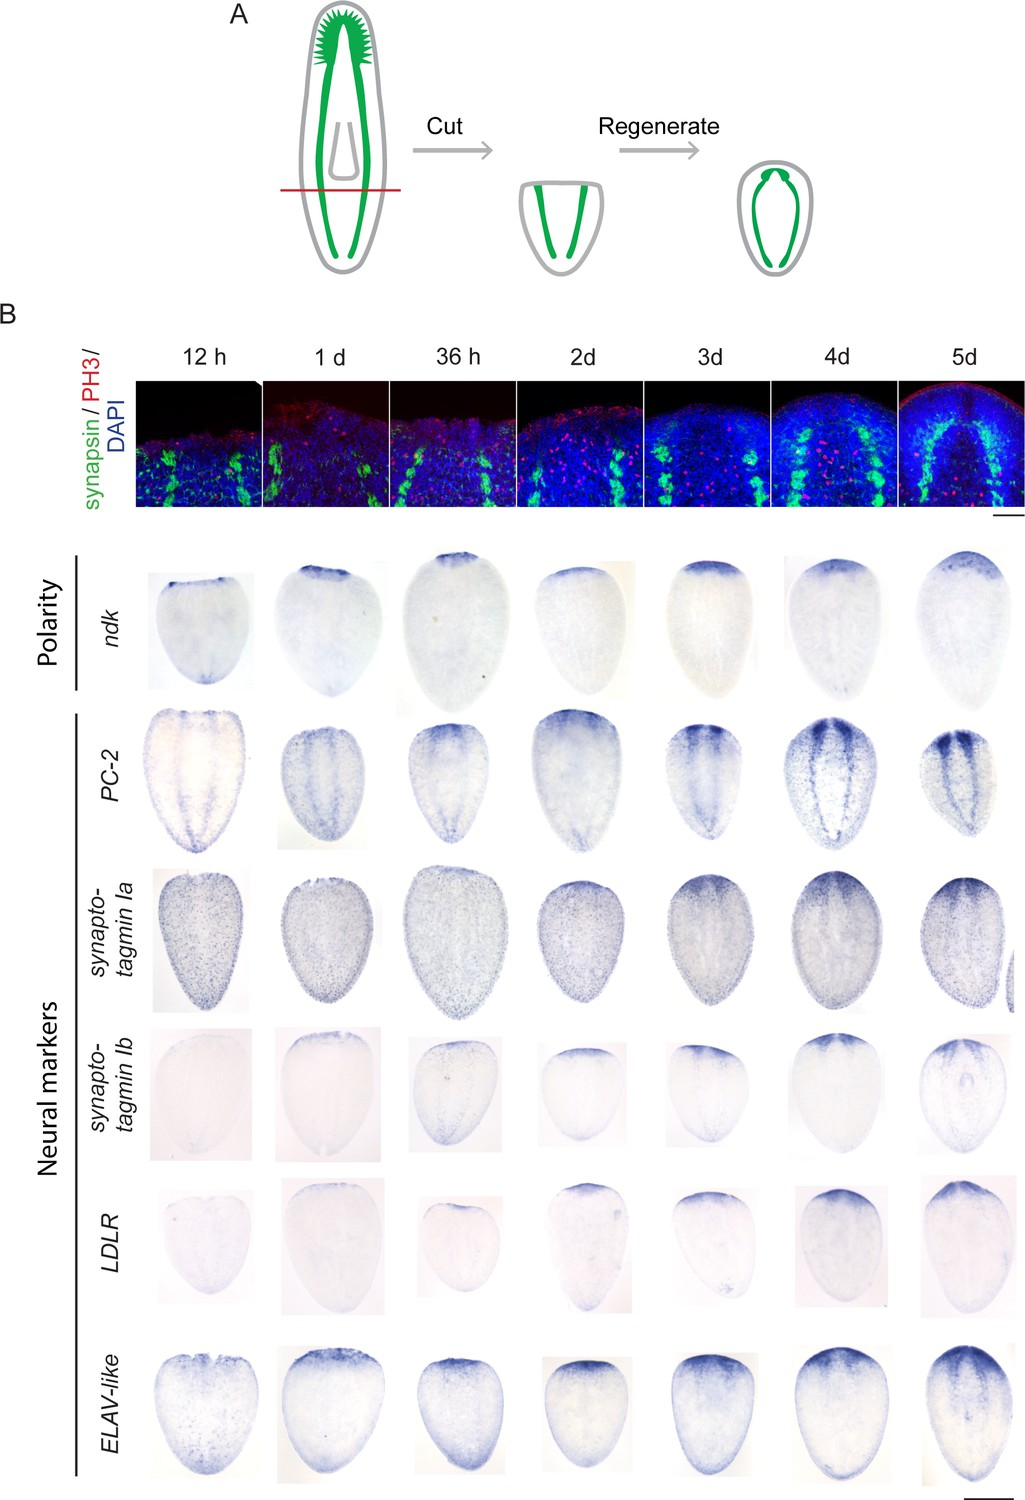 A functional genomics screen in planarians reveals regulators of whole-brain regeneration